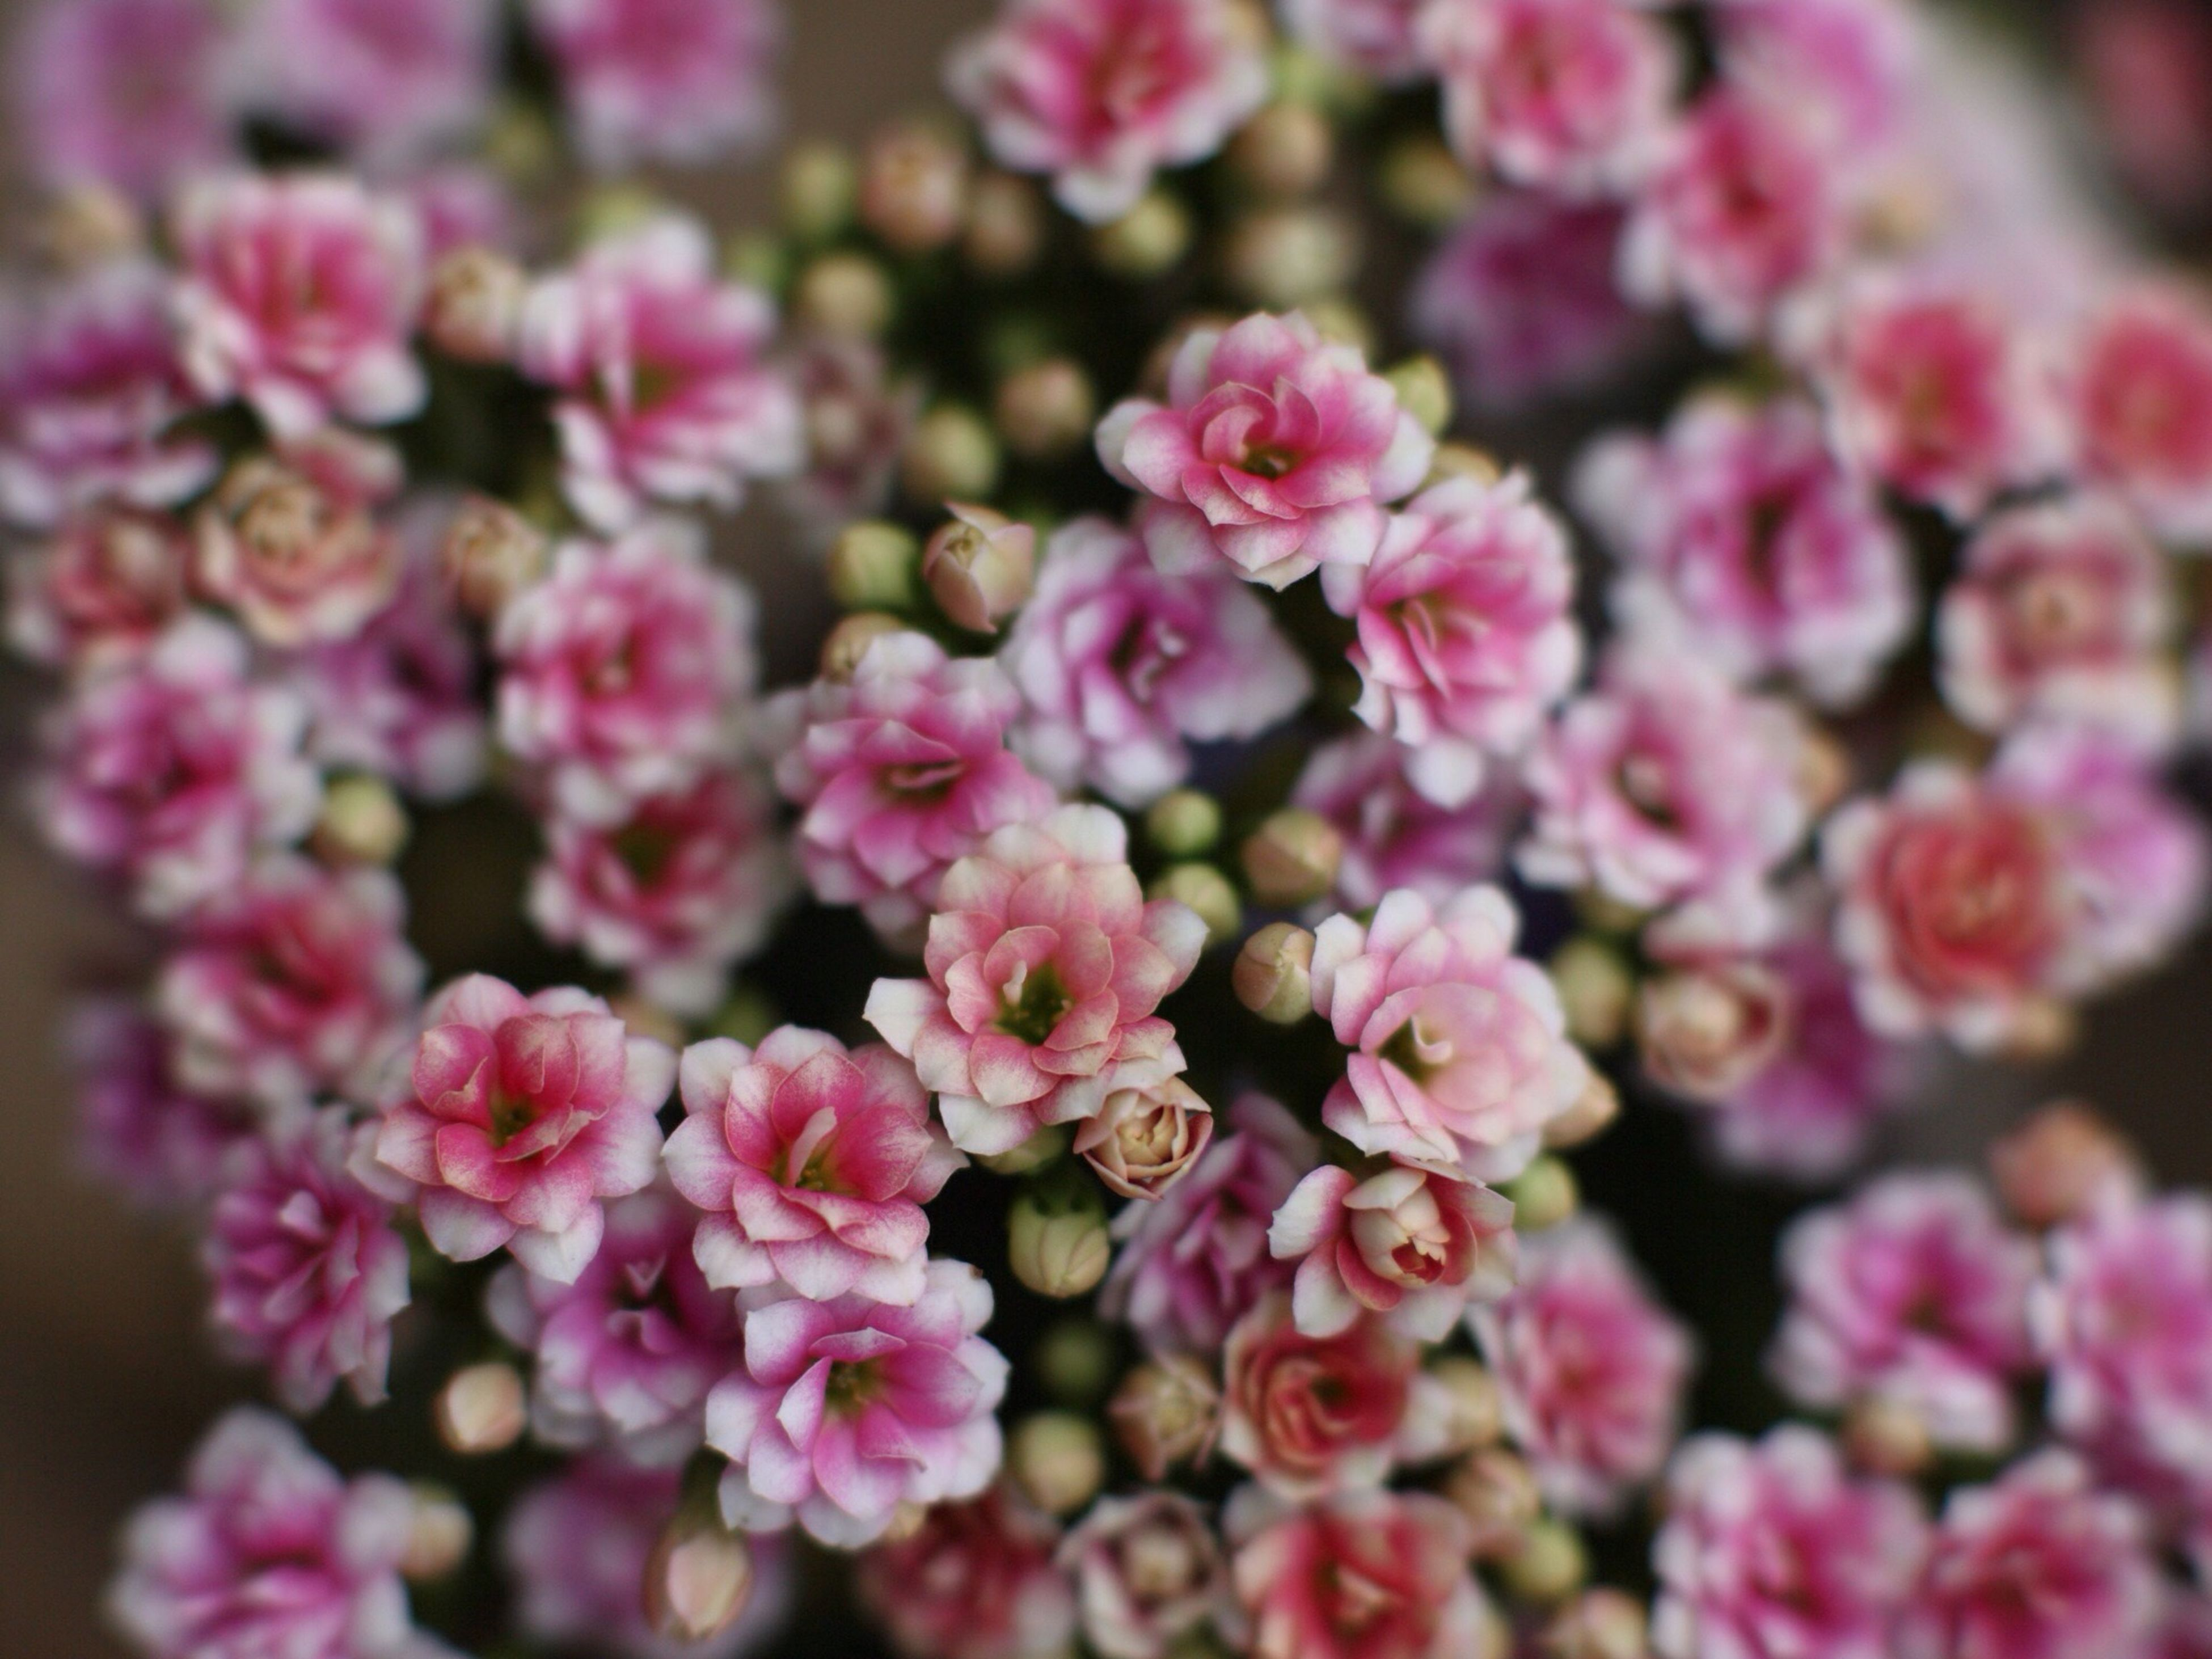 flower, freshness, petal, fragility, beauty in nature, growth, pink color, close-up, flower head, selective focus, nature, blooming, focus on foreground, abundance, plant, in bloom, pink, blossom, full frame, no people